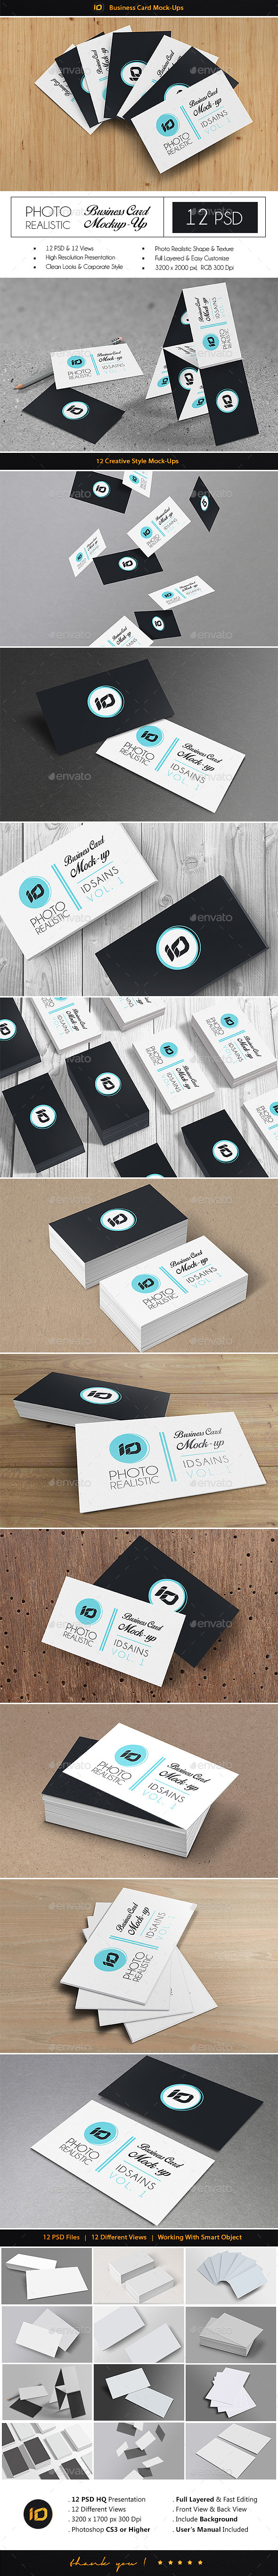 ID Business Card Mock-Up - Business Cards Print